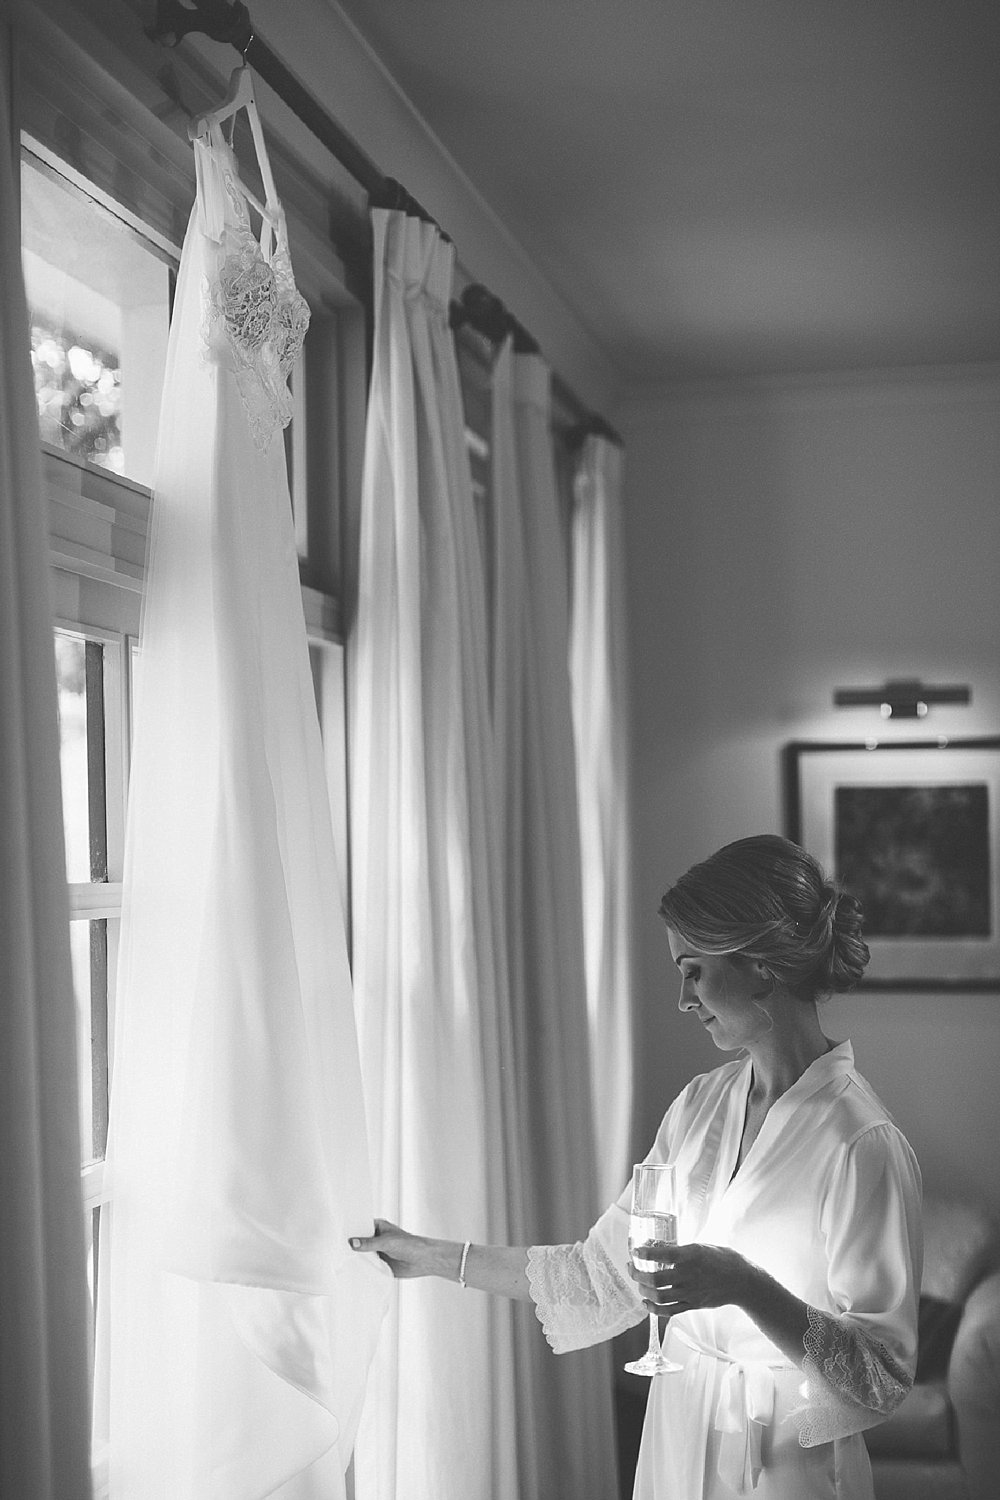 autumn wedding,Canberra Wedding Photographer,Canberra Wedding Photography,Hyatt Hotel,Hyatt hotel wedding,Keepsakephoto by the Keeffes,senate rose gardens,vintage wedding,wedding photographer canberra,wedding photography canberra,